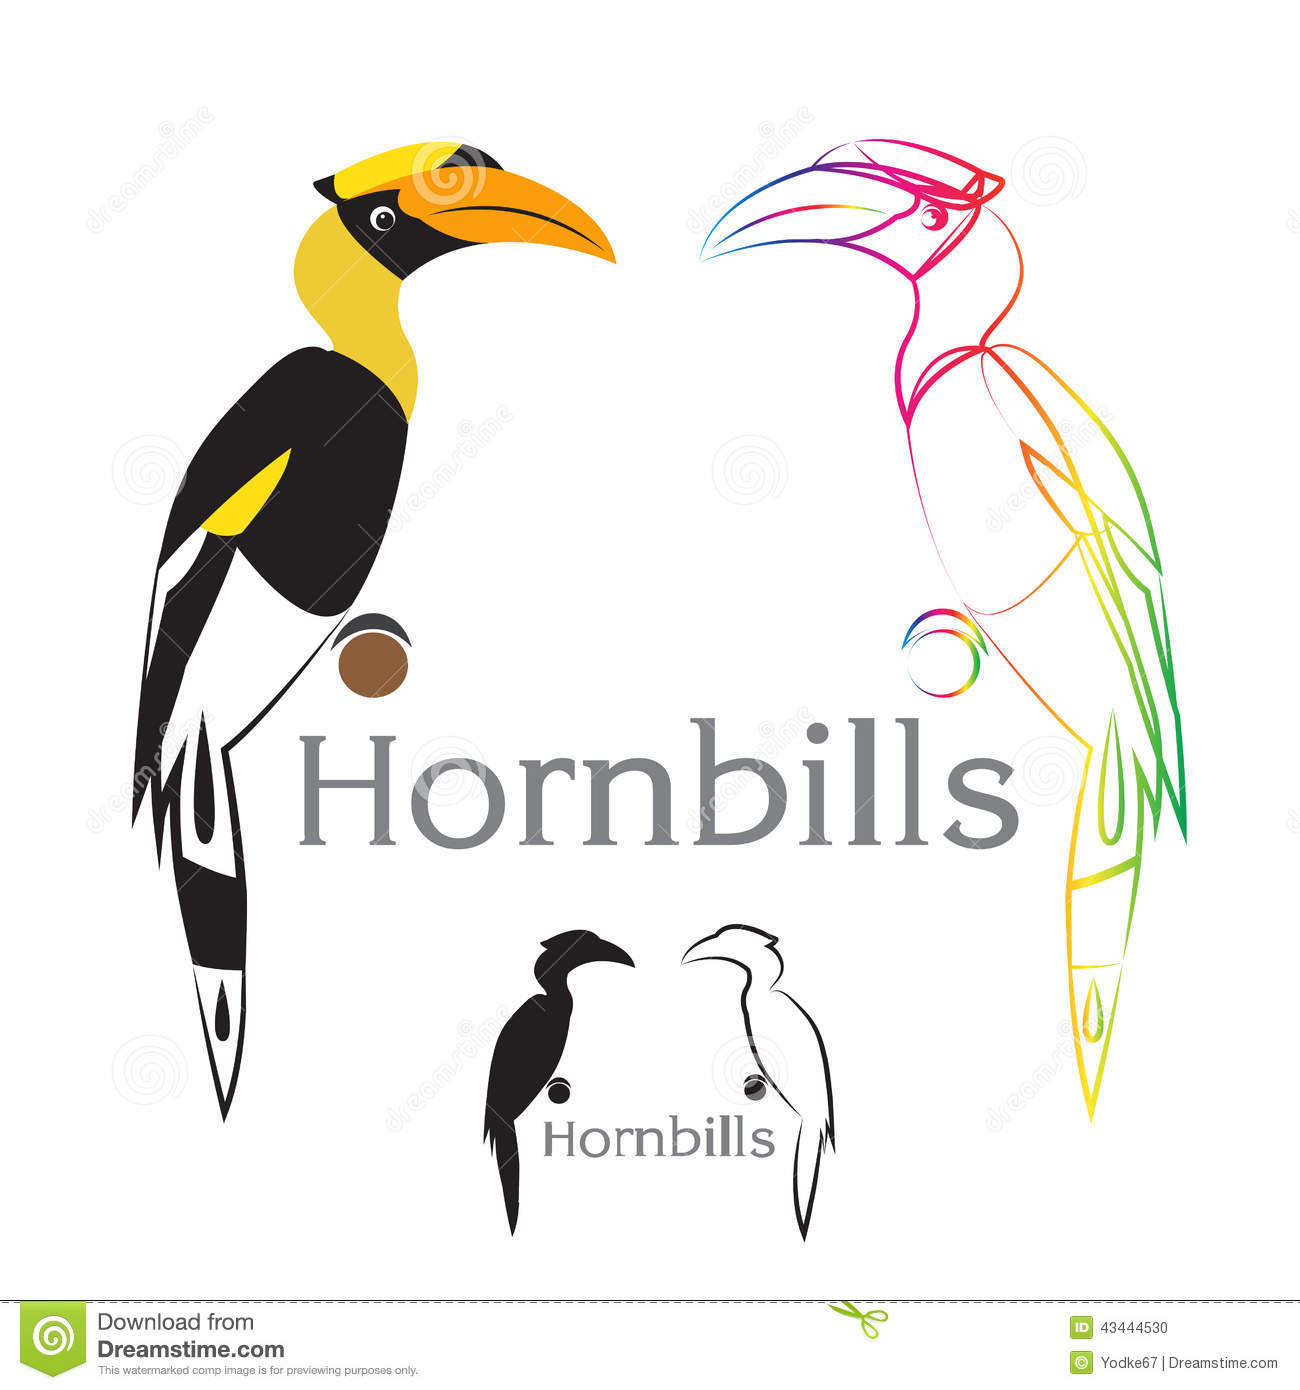 Rhinoceros Hornbill clipart #4, Download drawings